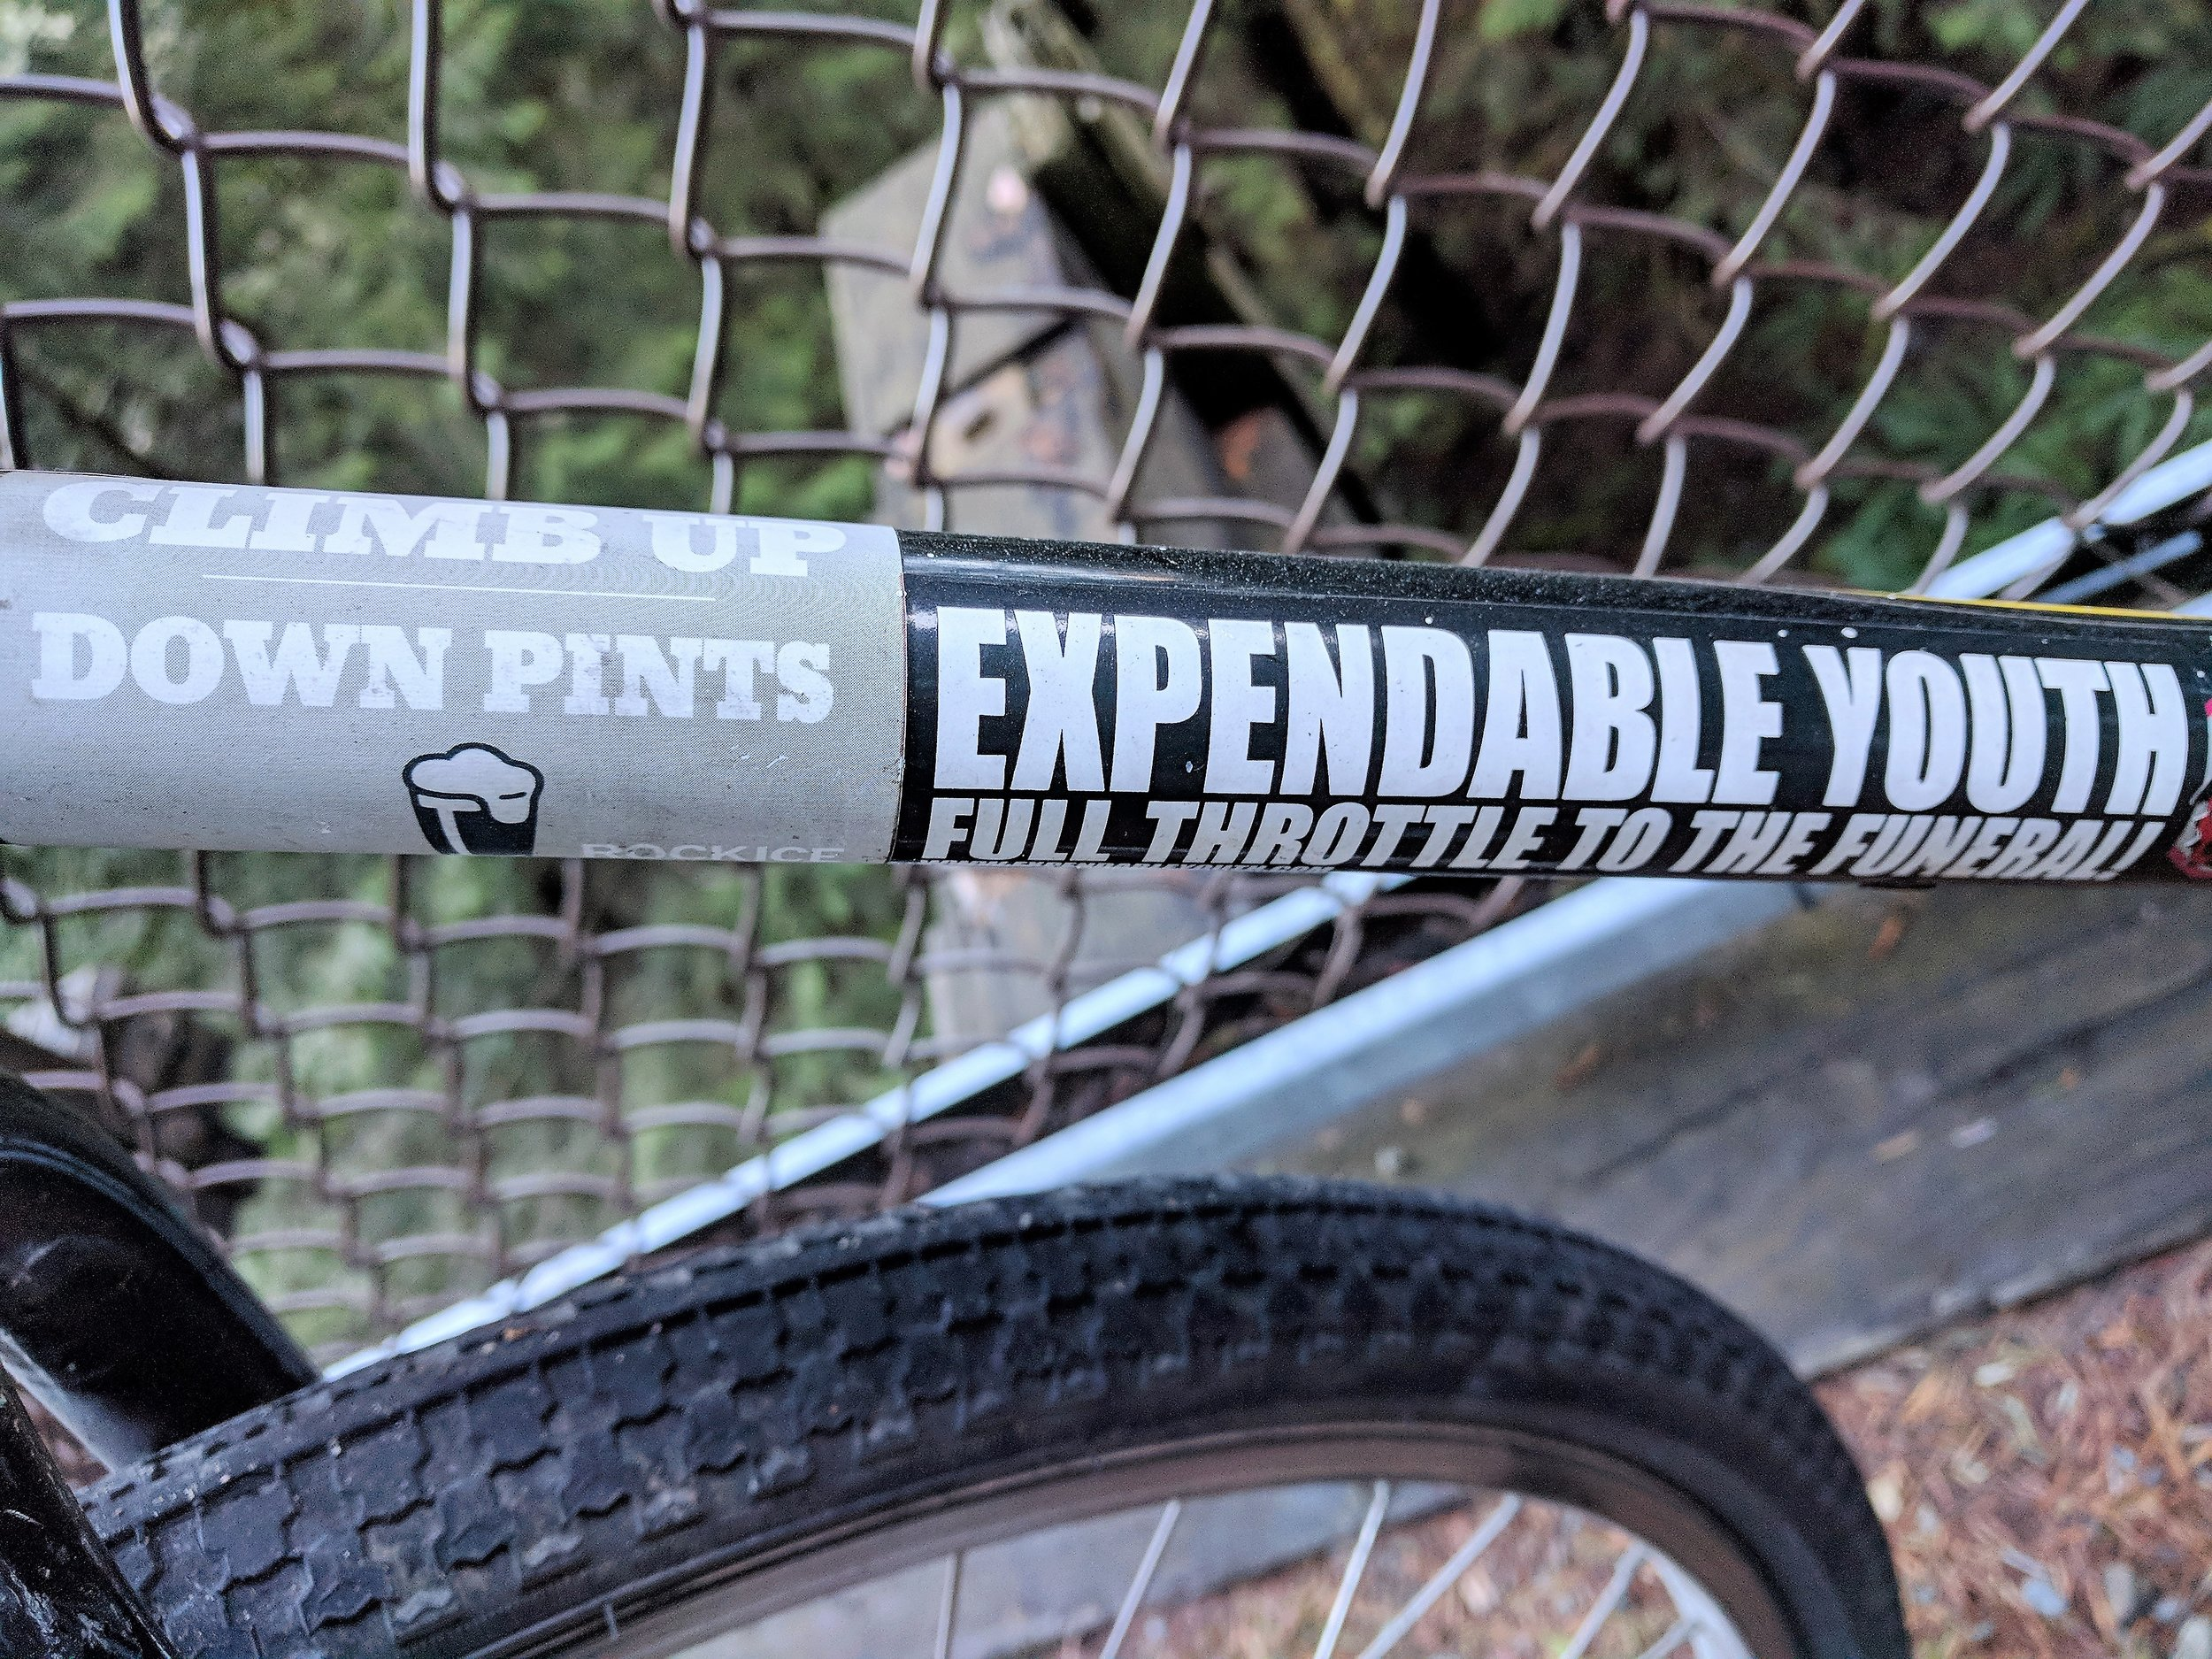 Stickers on the bicycle my brother loaned me: Climb up, down pints -- Expendable youth, full throttle to the grave! :)